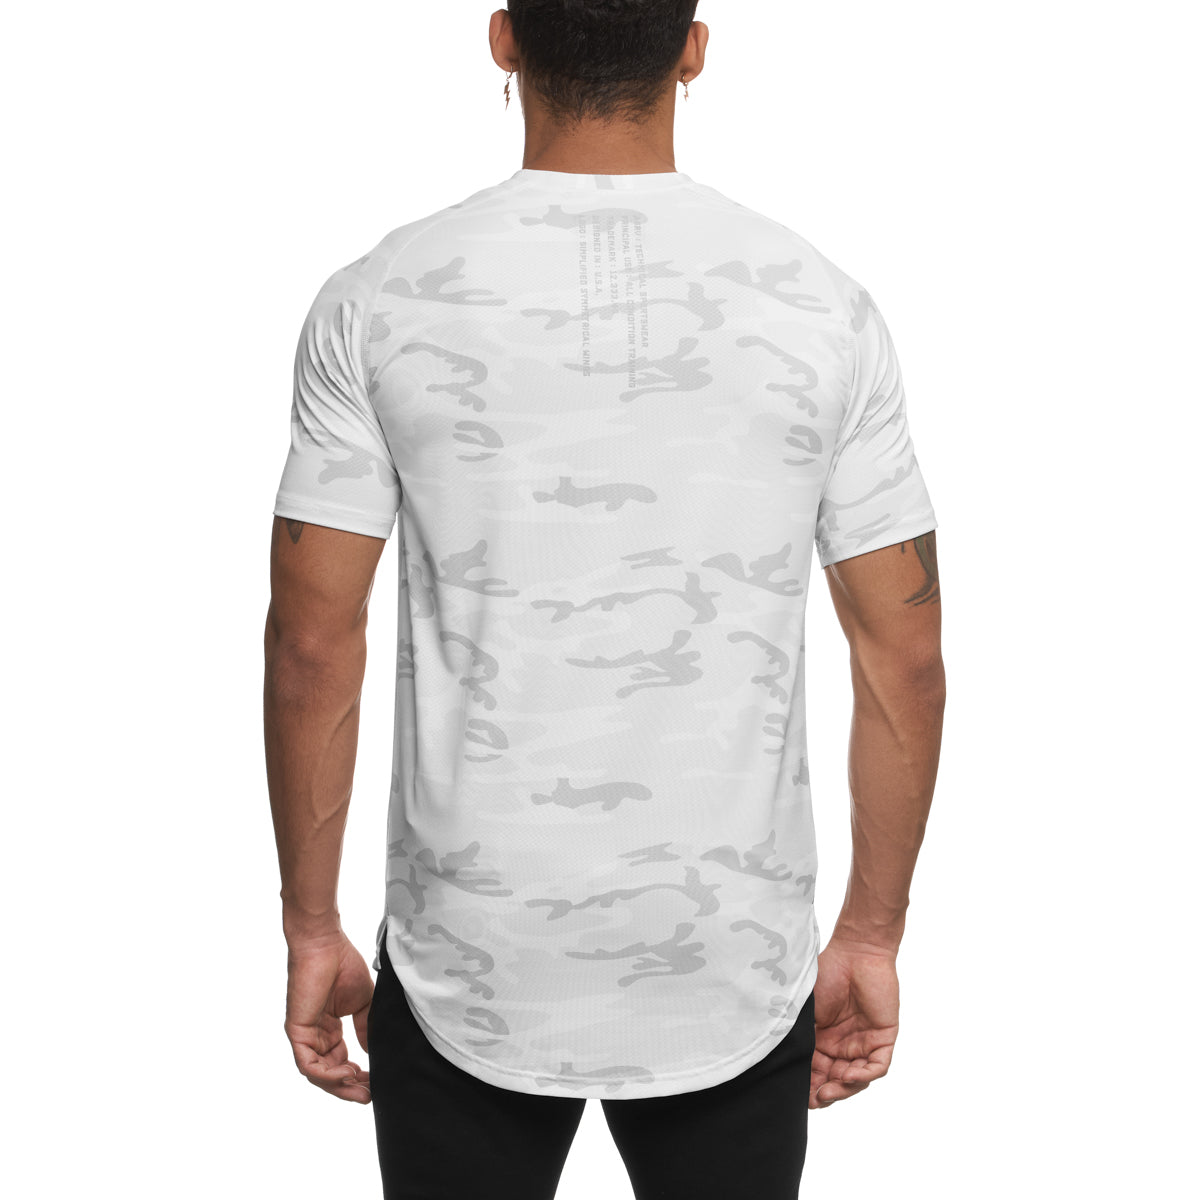 0164. Silver-Lite® Established Tee - White Camo